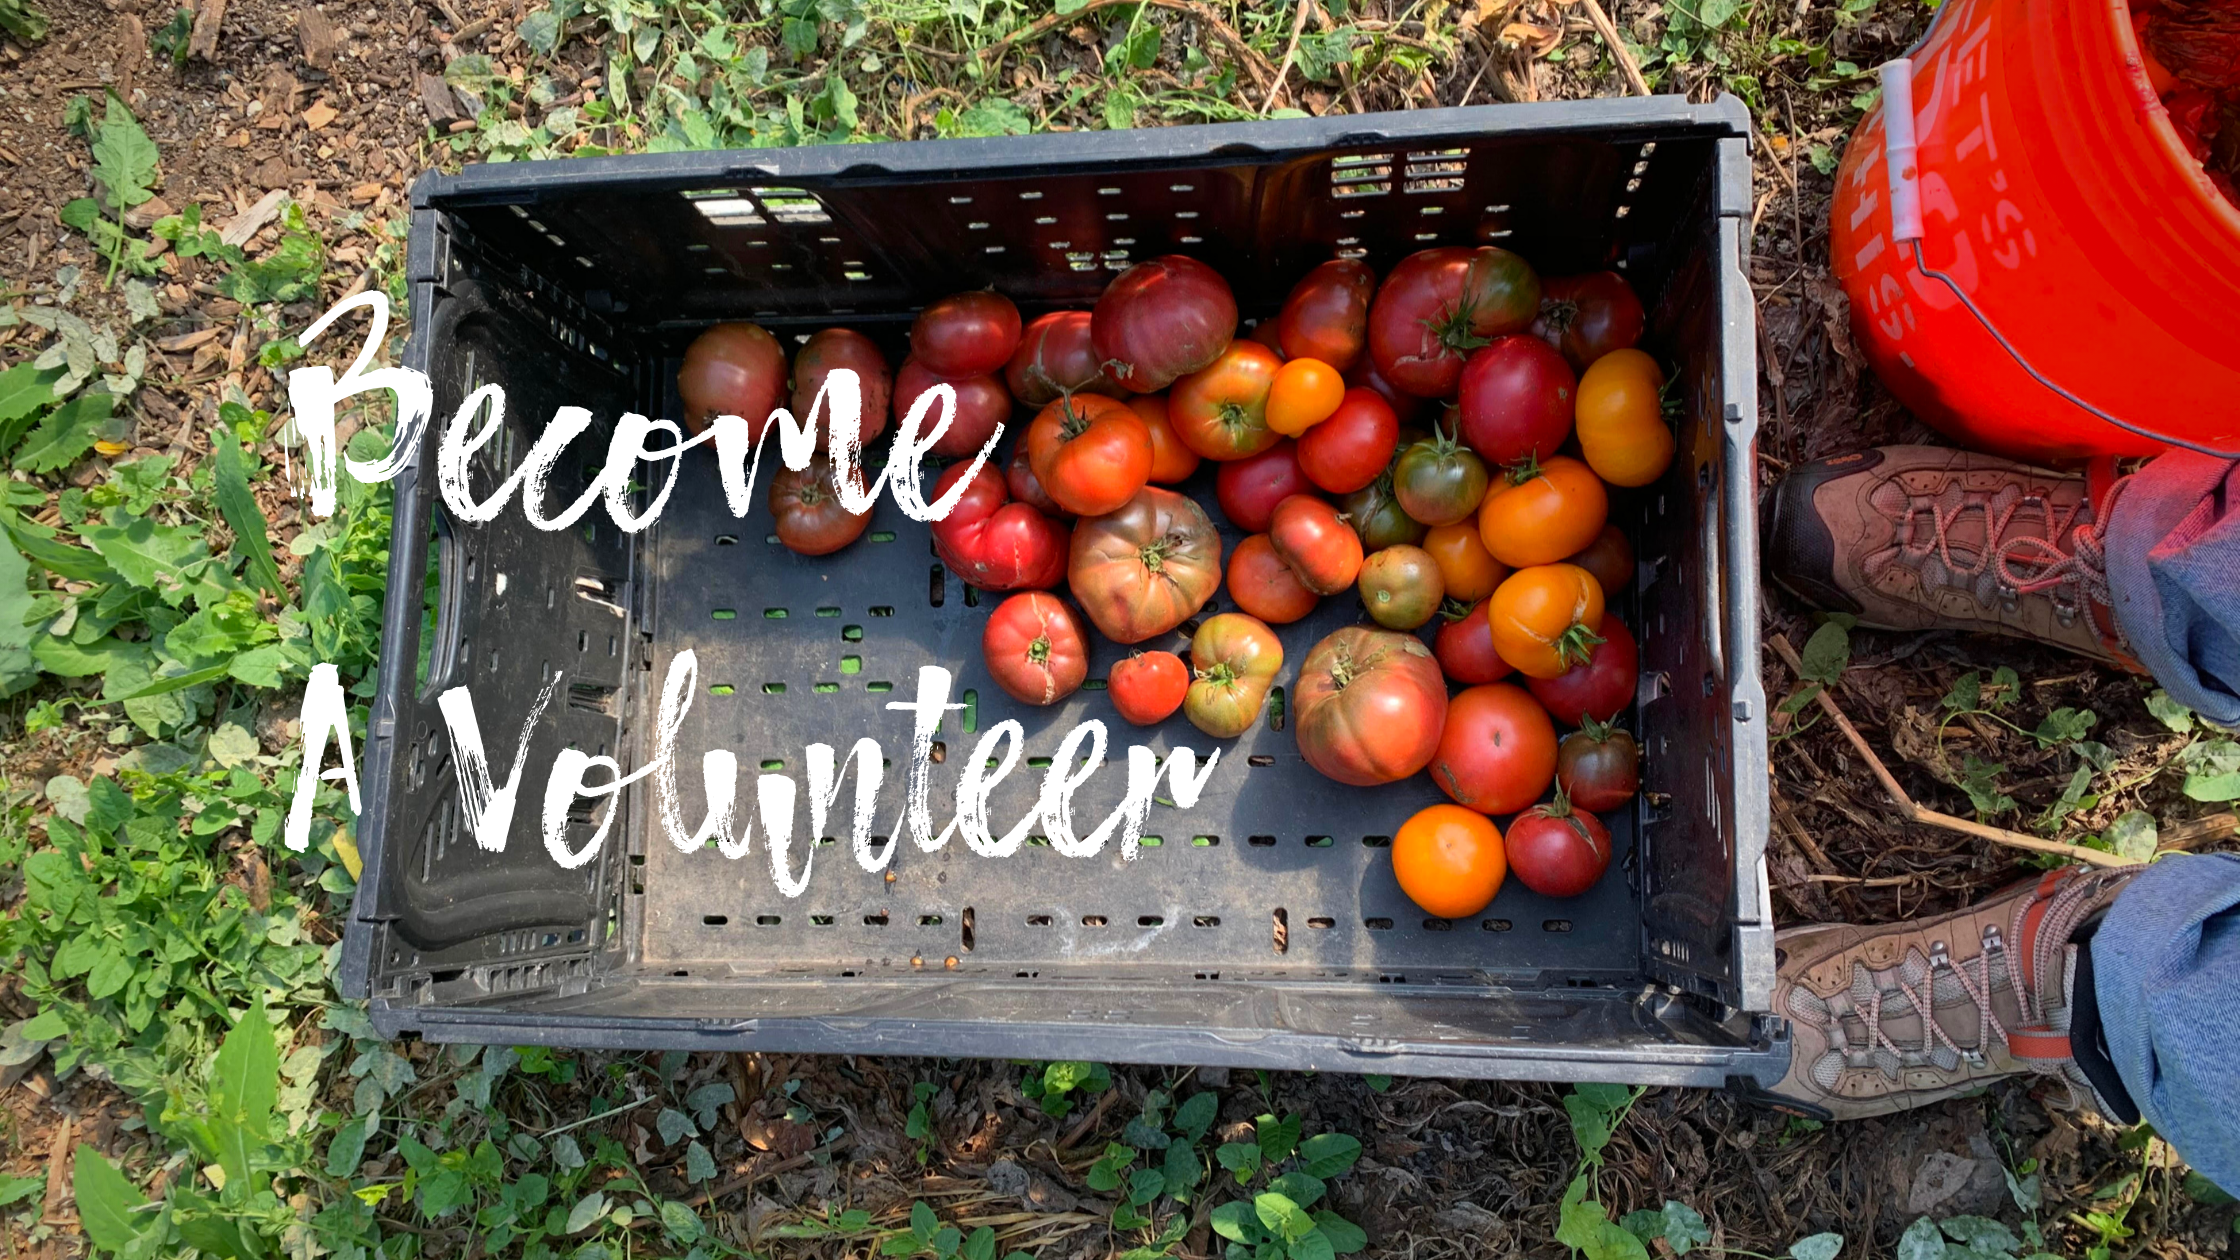 Fill out one of the applications below if you would like to become a community gardener with urban growers collective in 2021! (7)